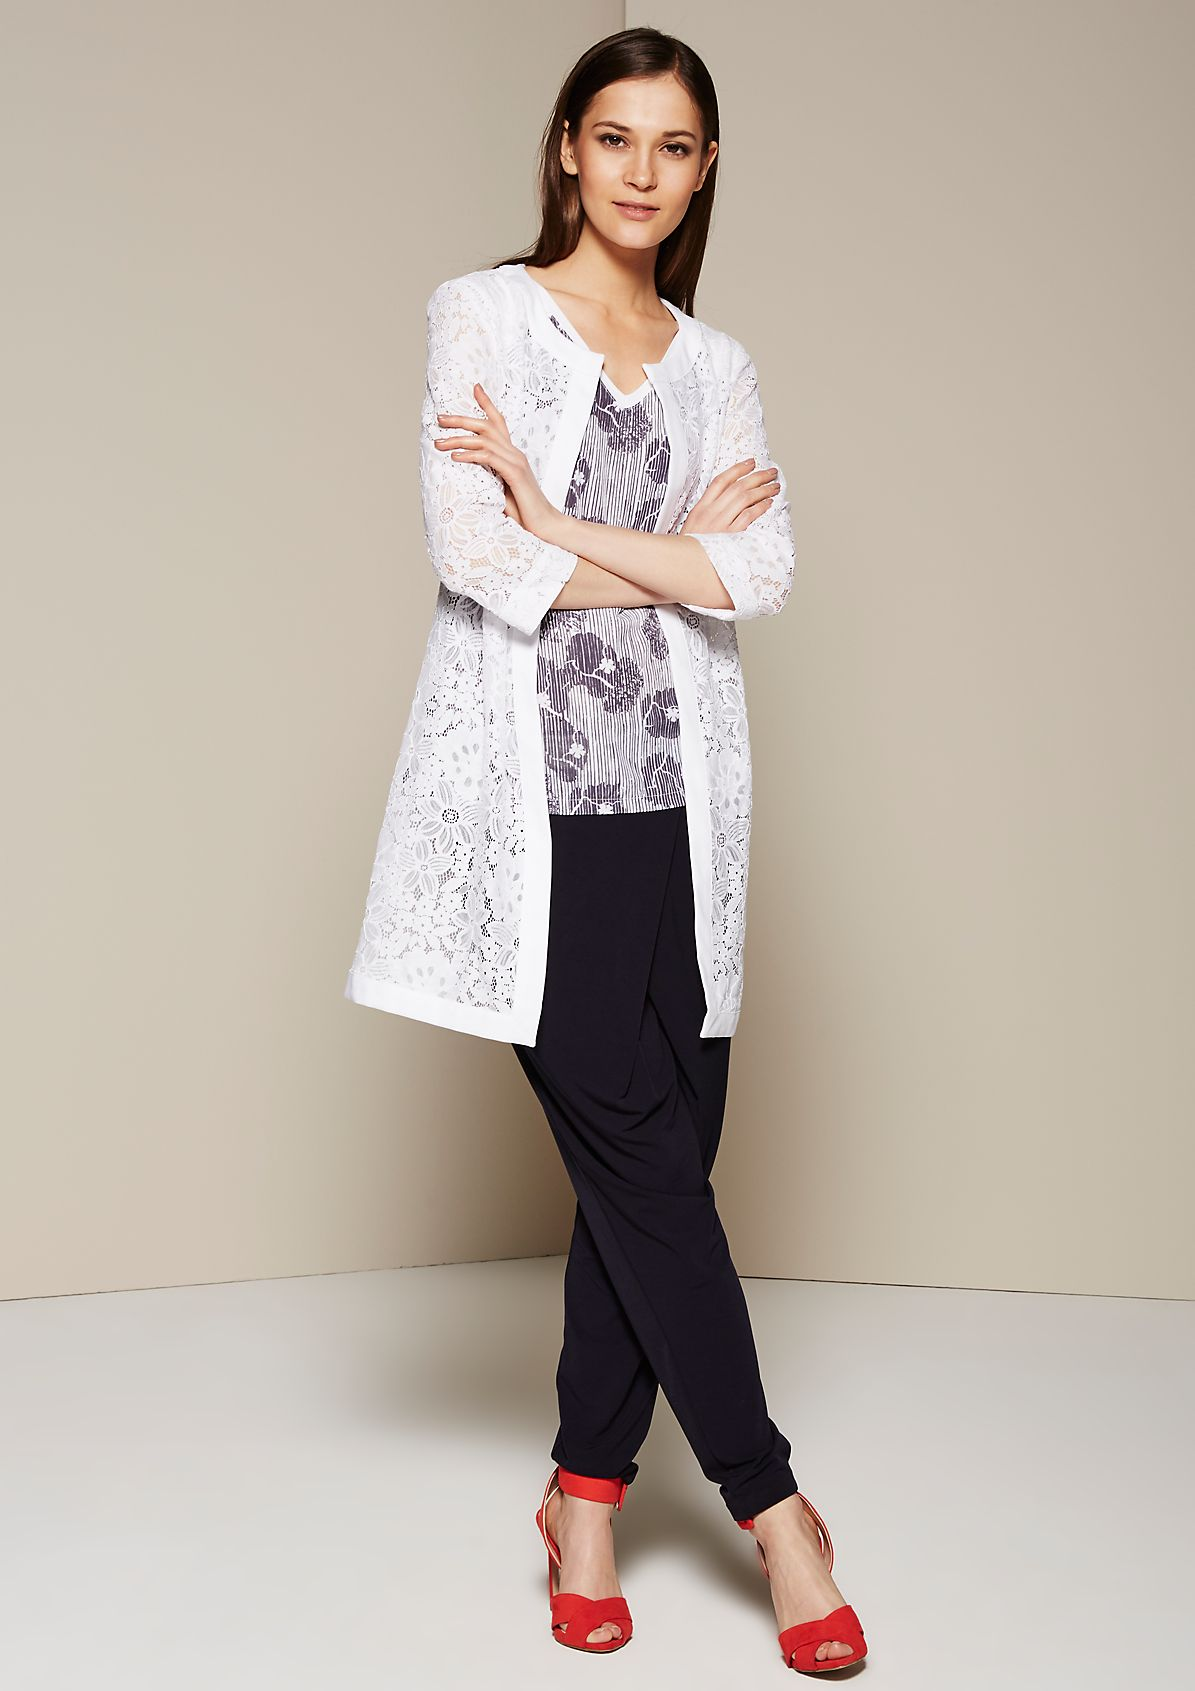 Extravagant long jacket in delicate lace from s.Oliver